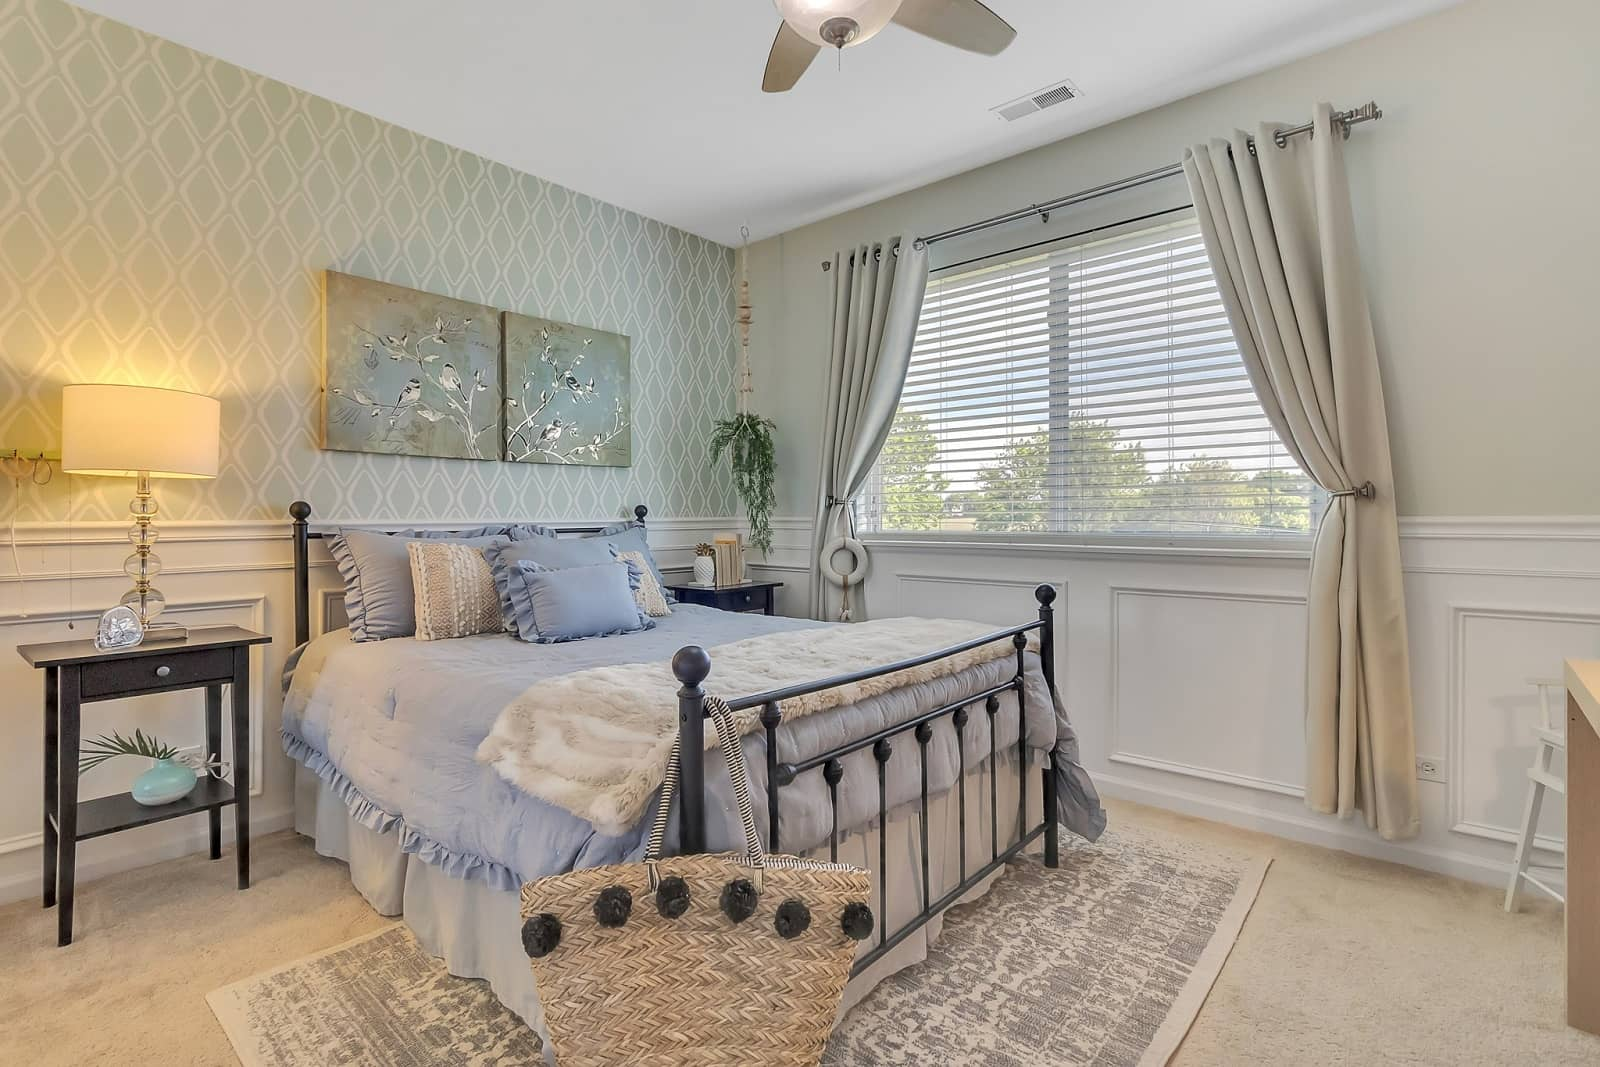 Real Estate Photography in Elgin - IL - USA - Bedroom View